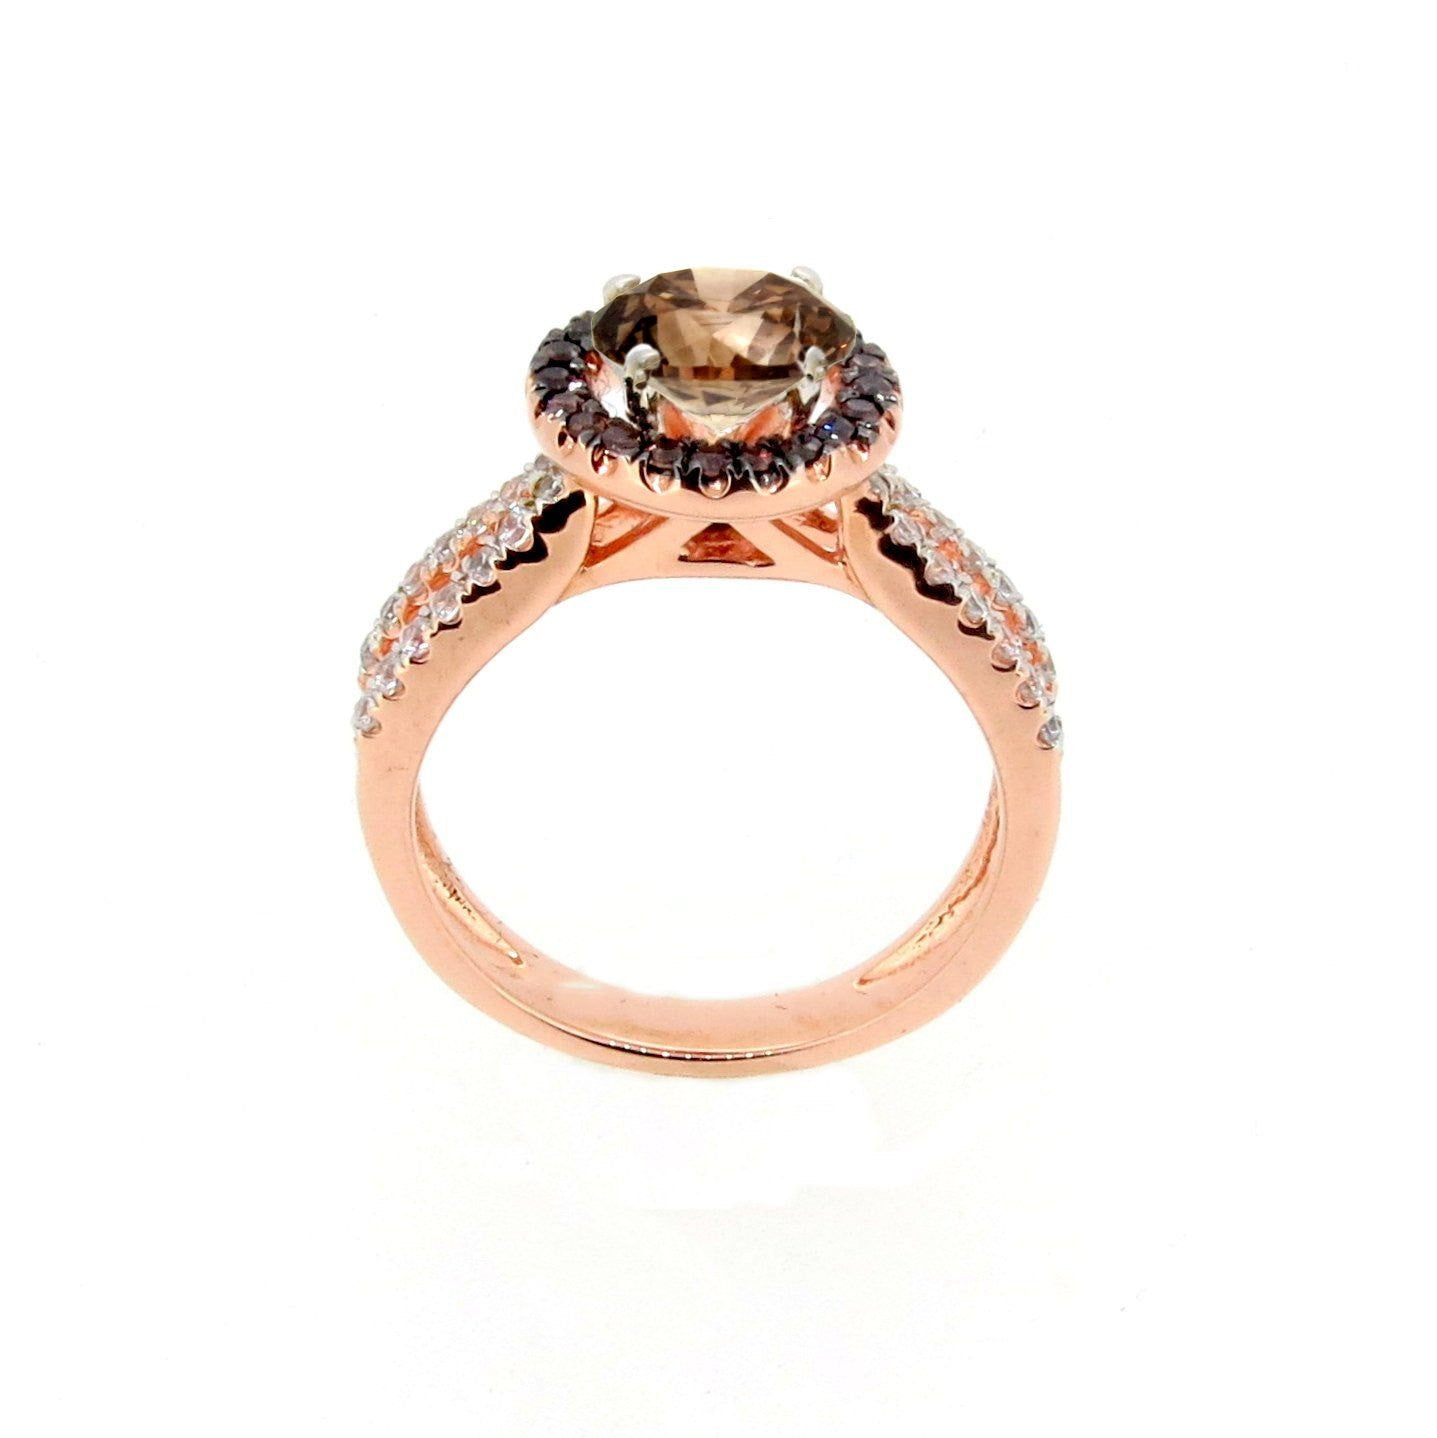 1 Carat Chocolate Brown Diamond Floating Halo Rose Gold, White & Brown Diamond Engagement Ring, Split Shank, Anniversary Ring - BD94656